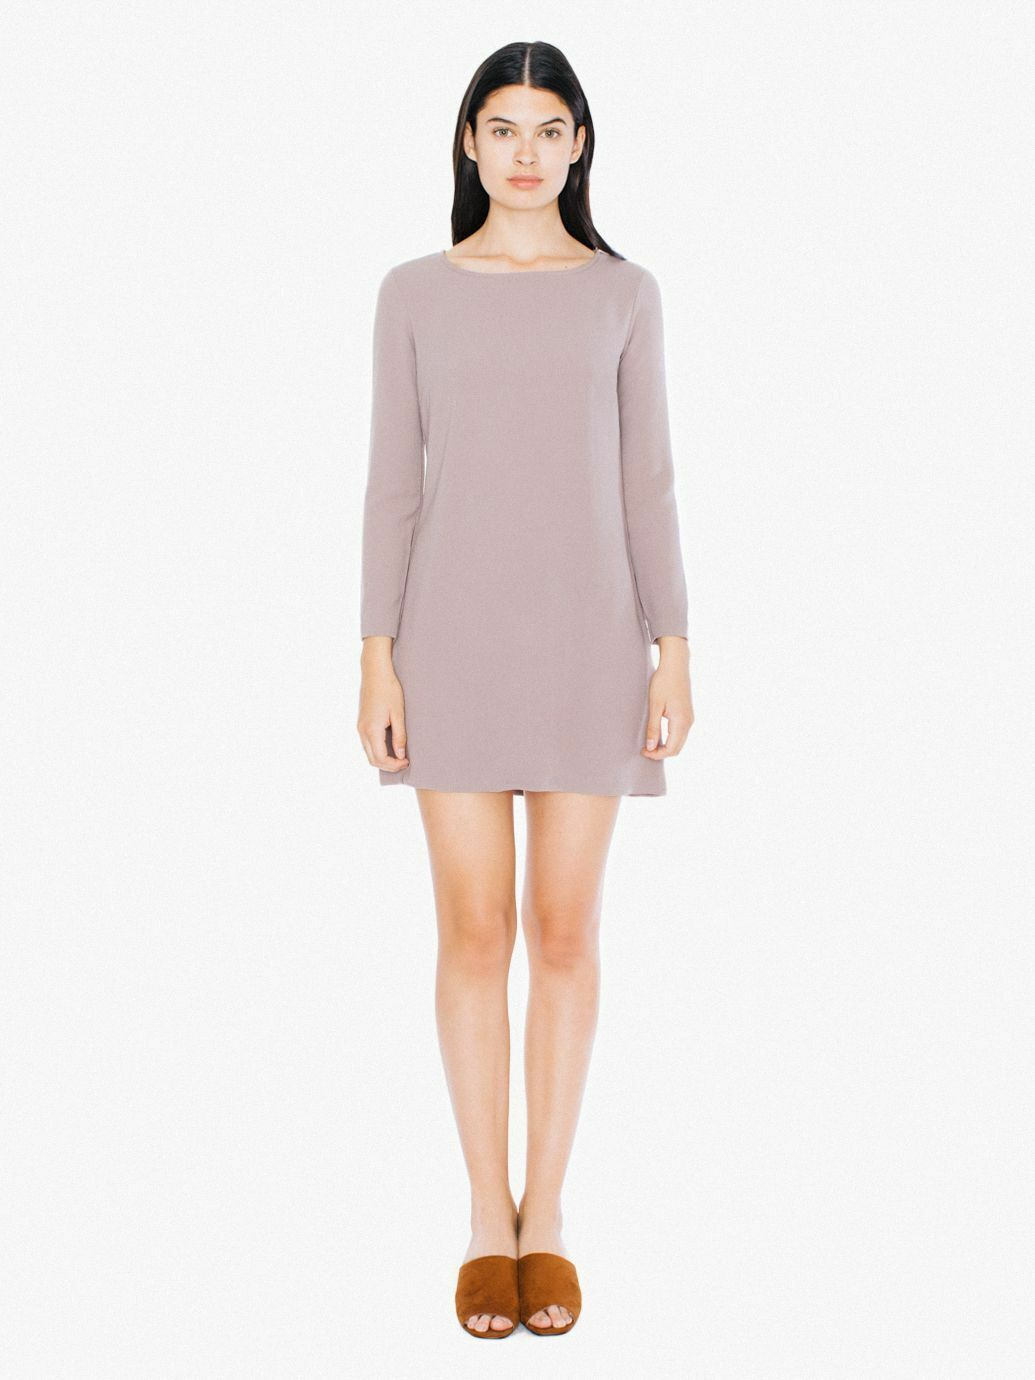 American Apparel Taupe Long Sleeve Gia Mini Dress Mod Willow Crepe XS 00 0 2